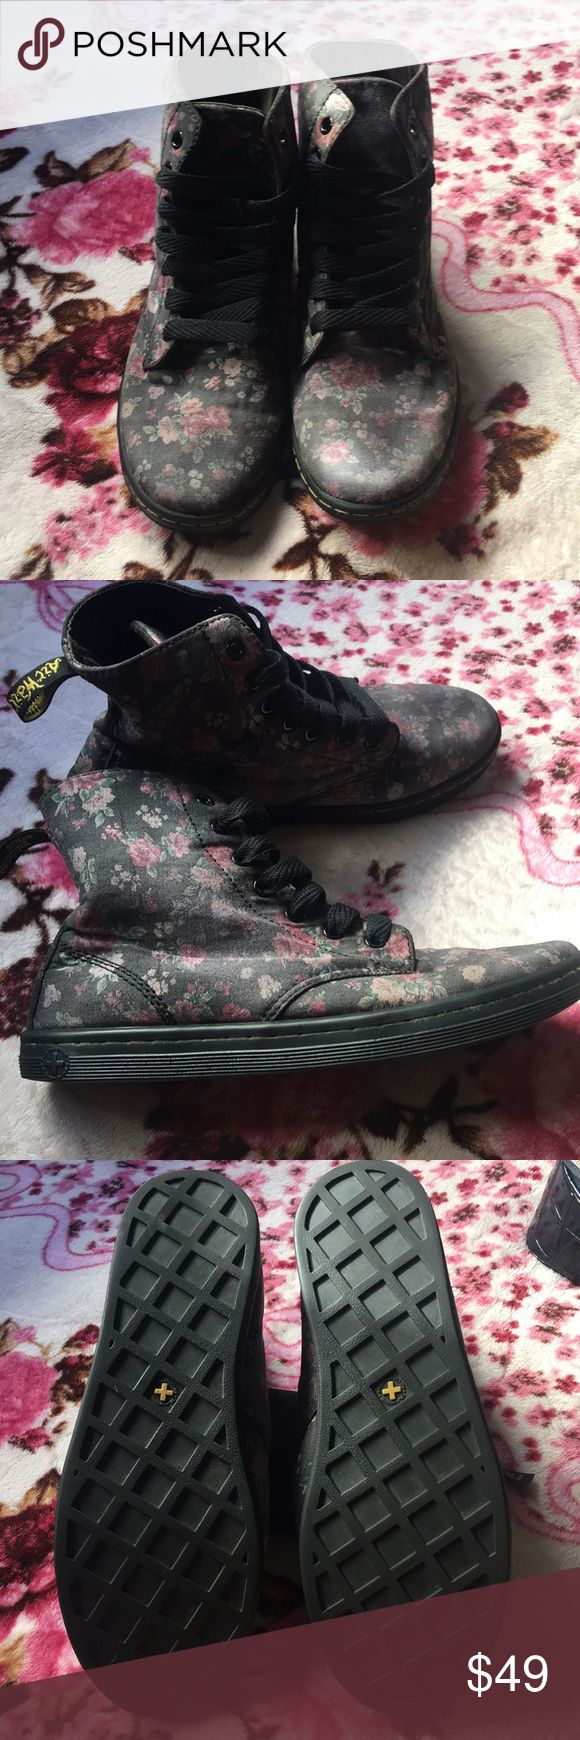 Dr. Martens Floral Boots These boots are well loved and taken care of! Before I put them up for sale I washed them and they faded a bit but besides that they're in great condition. Worn for only the summer❤️ Dr. Martens Shoes Ankle Boots & Booties